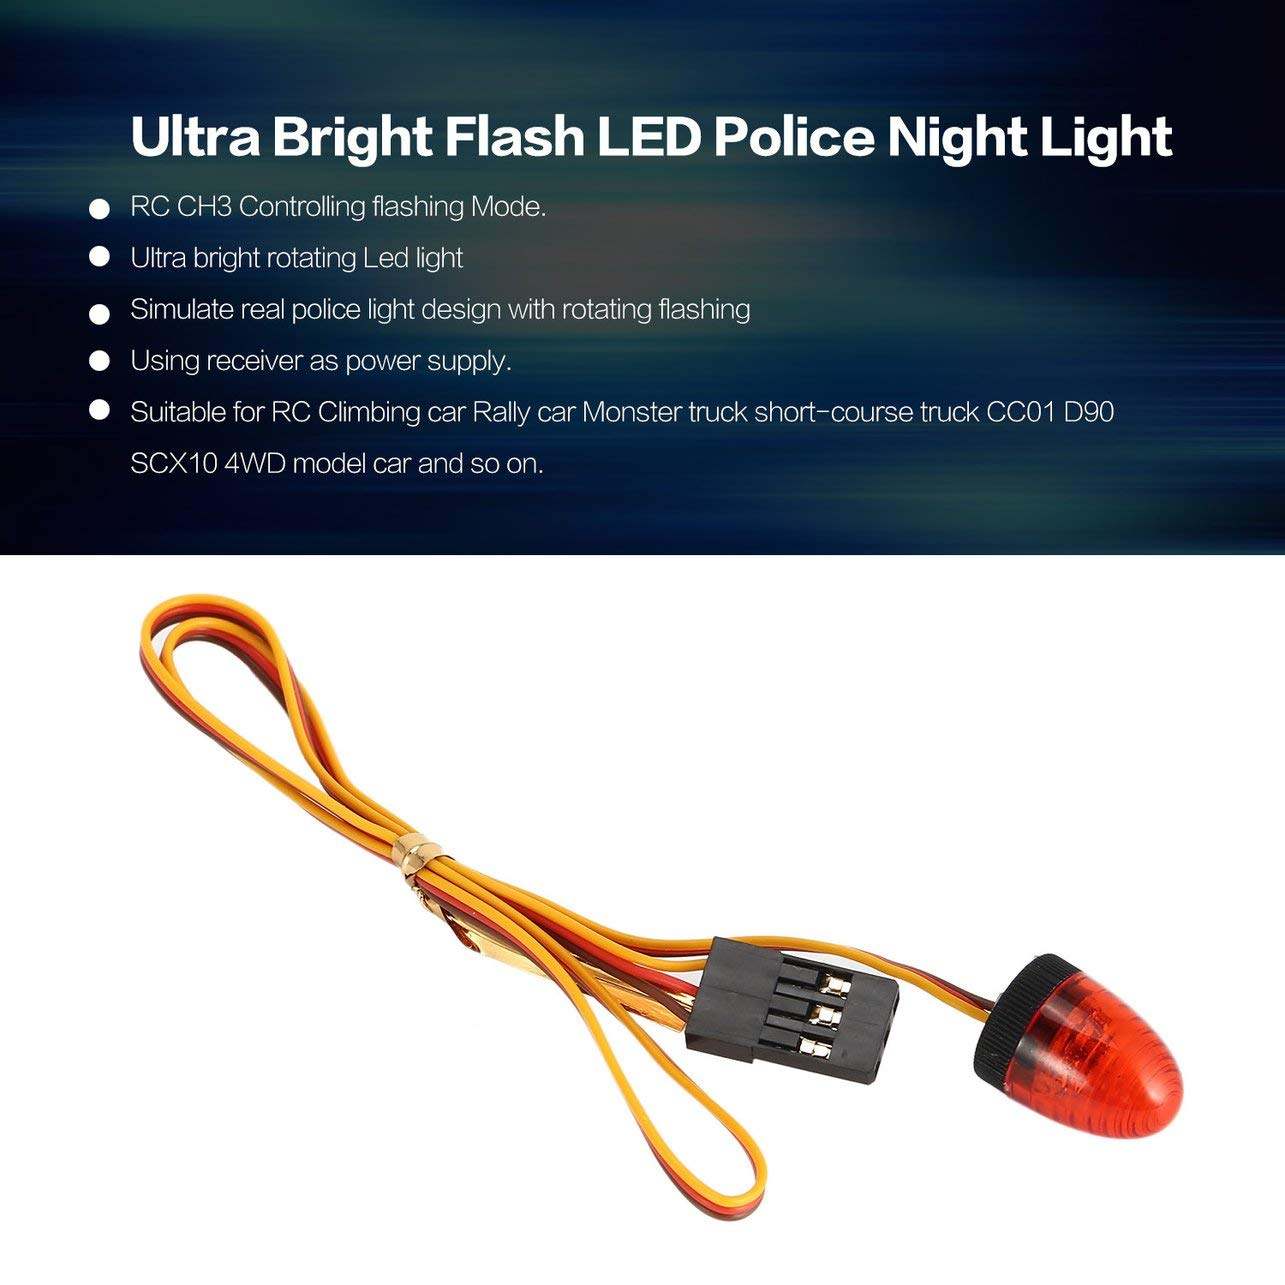 AUSTAR Ultra Bright Flash LED Police Night Light RC Car Tamiya HSP Axial, Yellow WOSOSYEYO